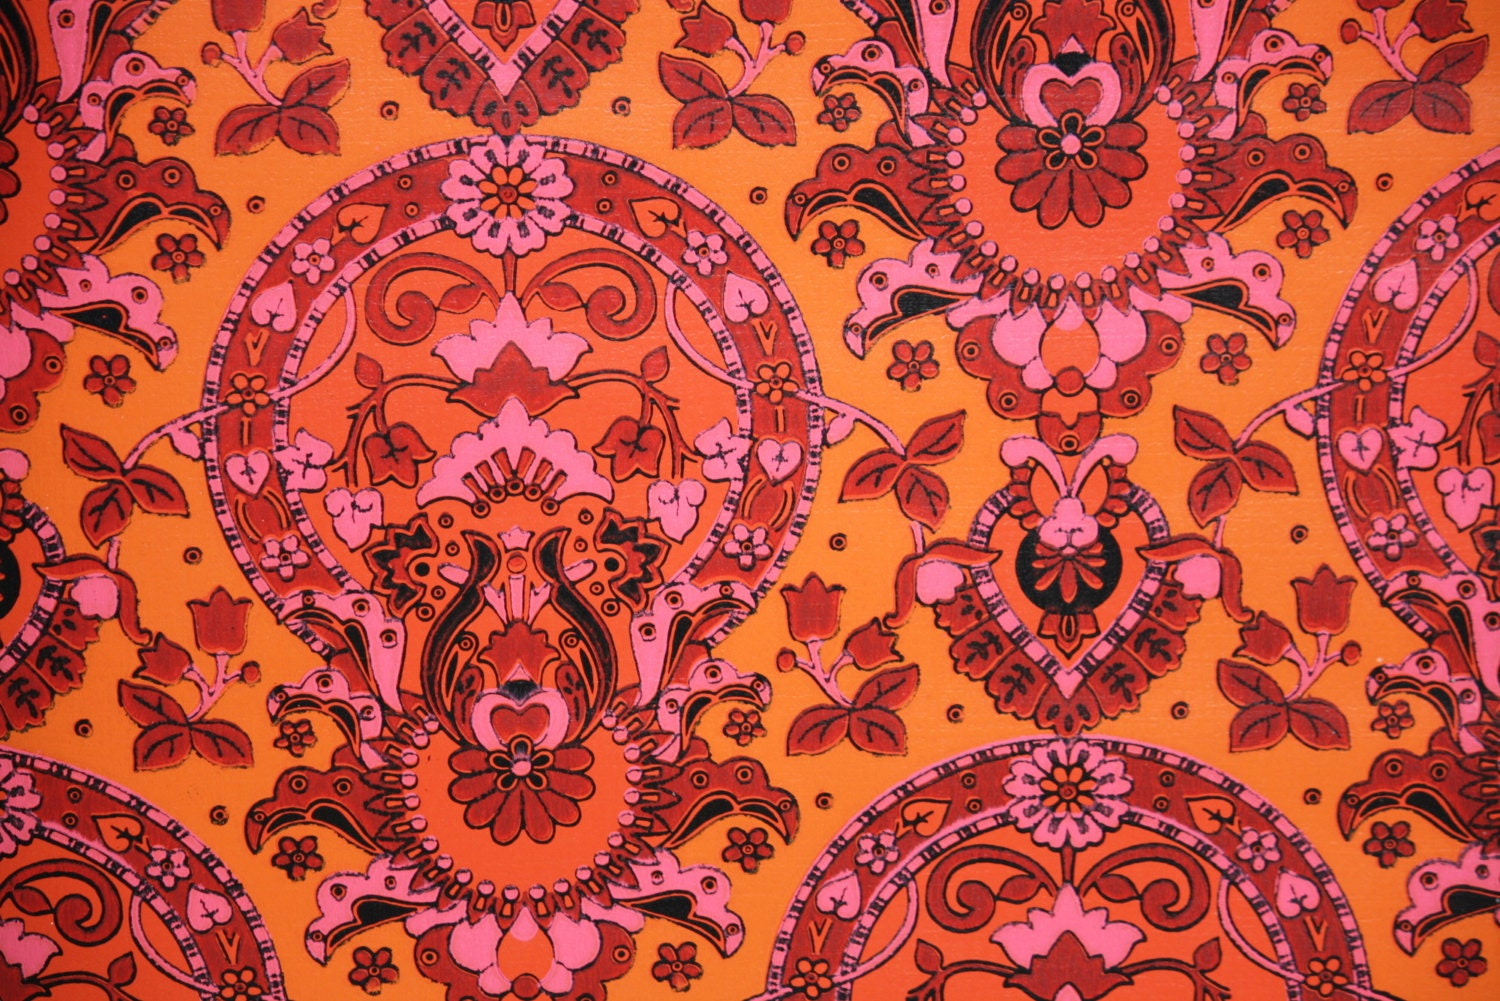 1970s vintage wallpaper retro - photo #20